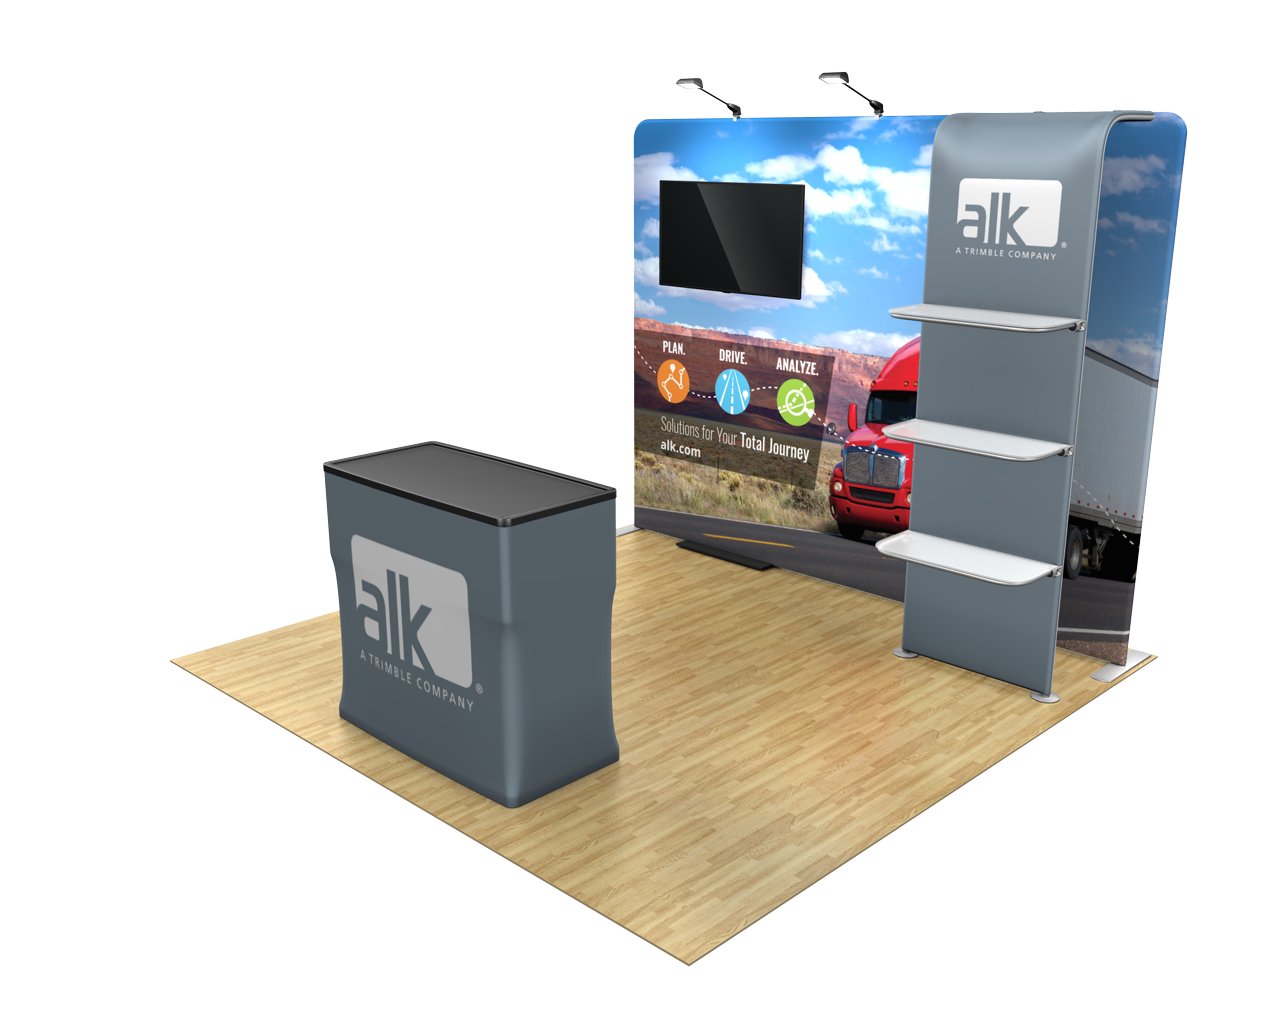 Waveline Media 10ft Trade Show Display Kit - 10.11